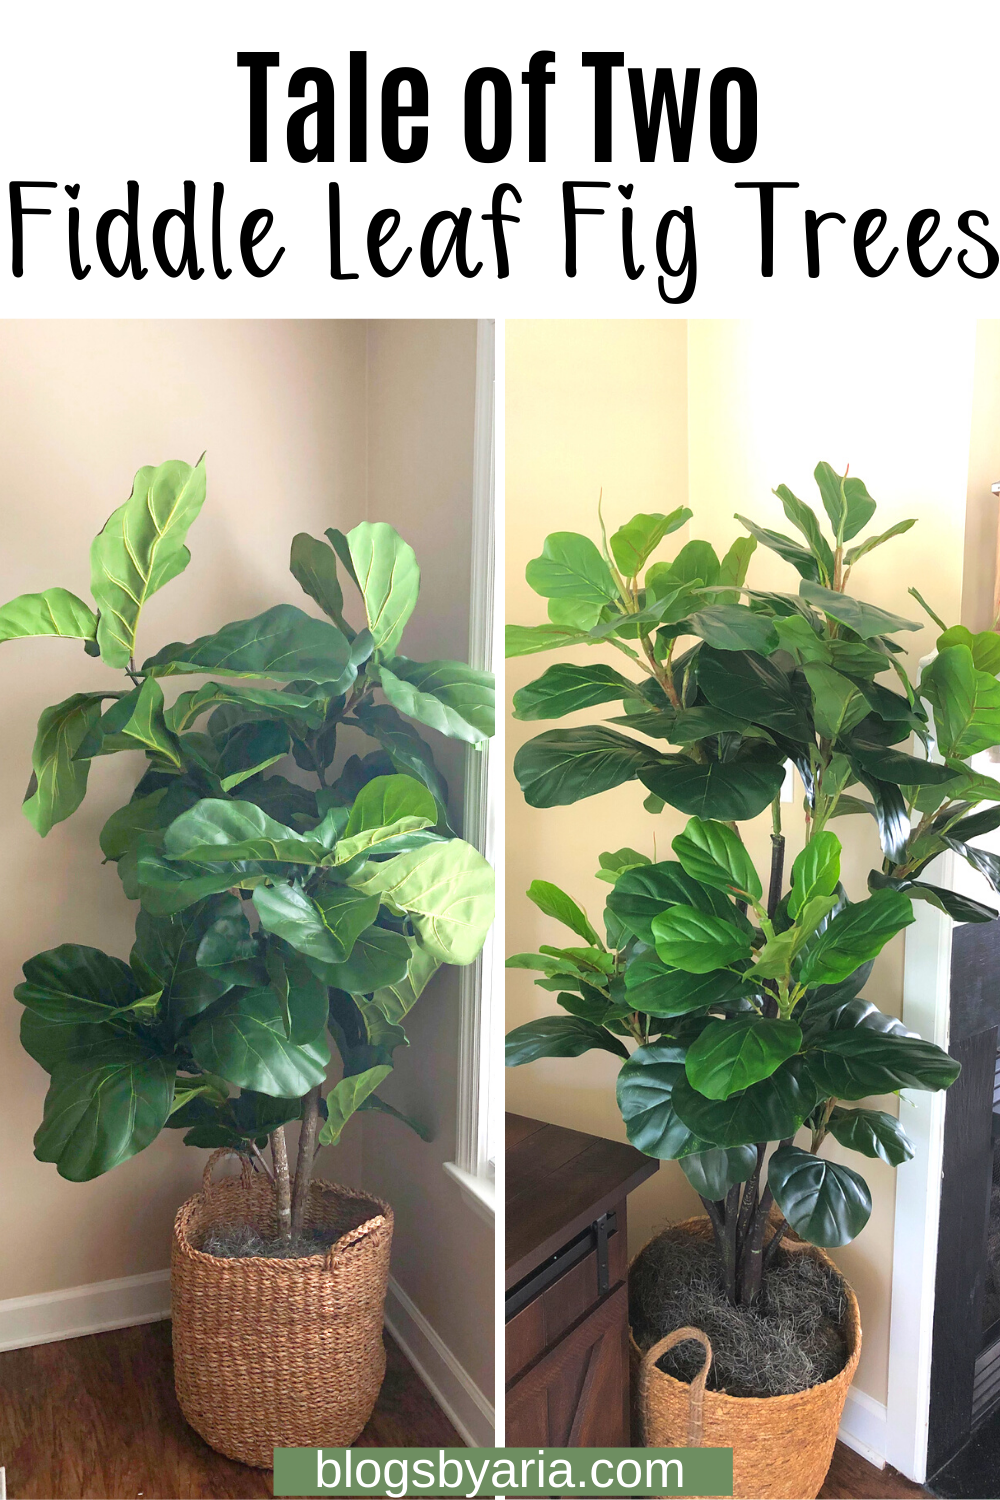 Tale of Two Fiddle Leaf Fig Trees